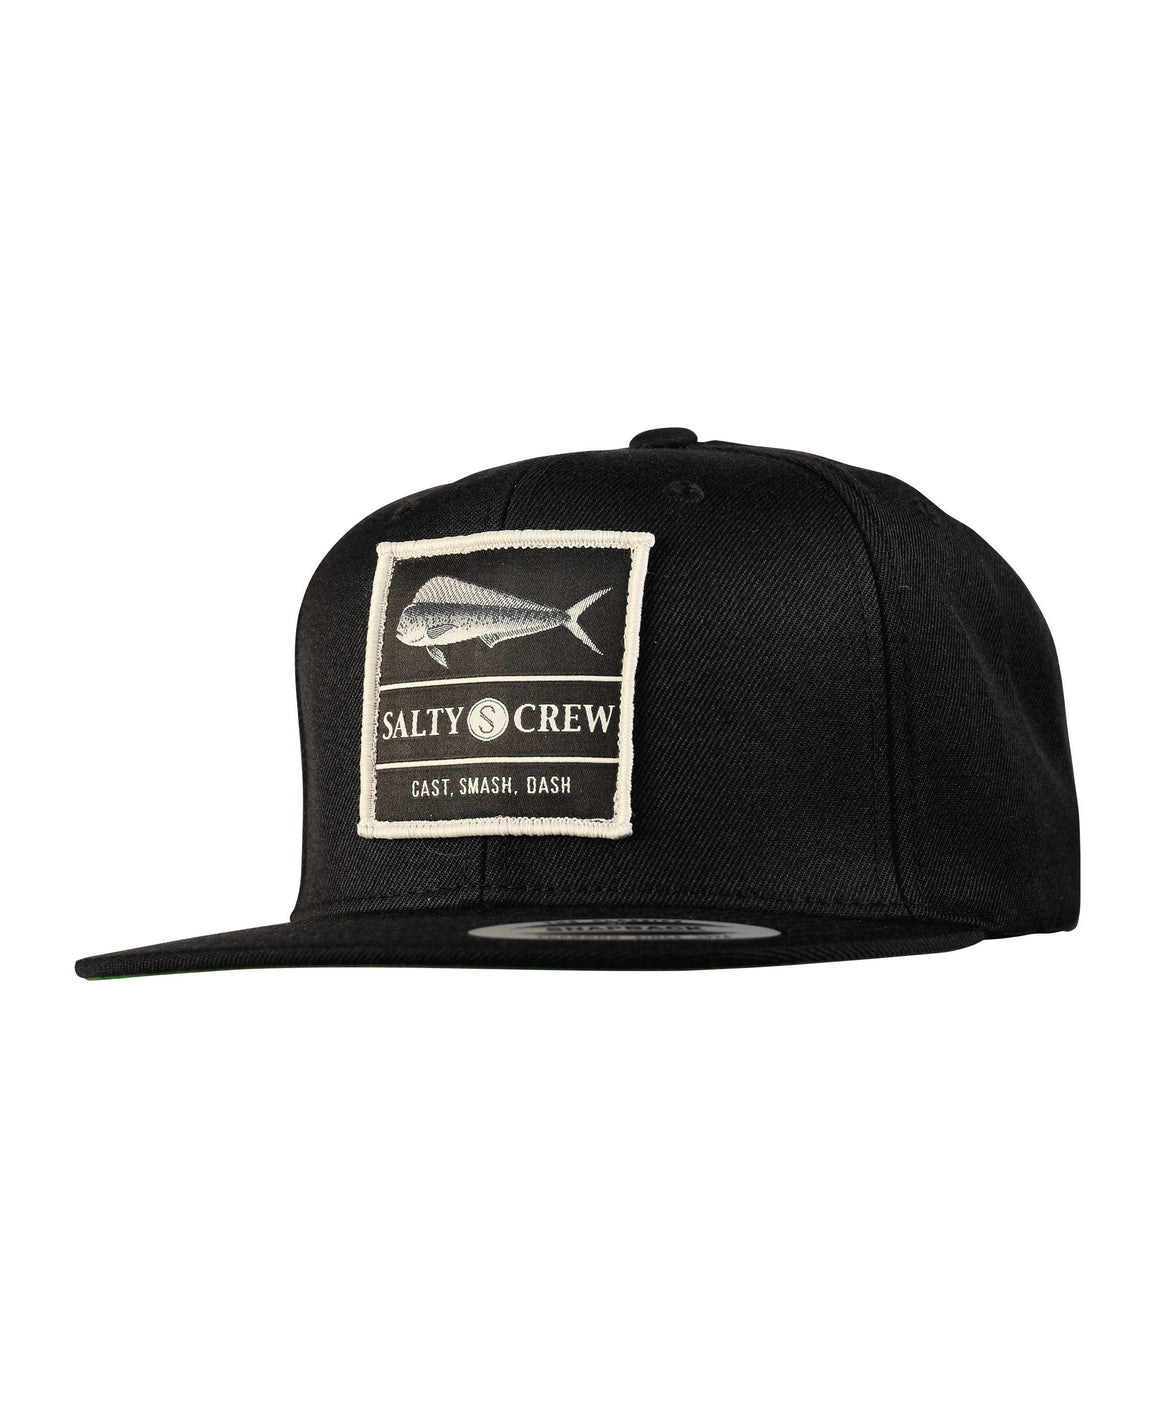 -Apparel Accessories-Salty Crew Mens El Dorado Hat - Black-Salty Crew-Seaside Surf Shop